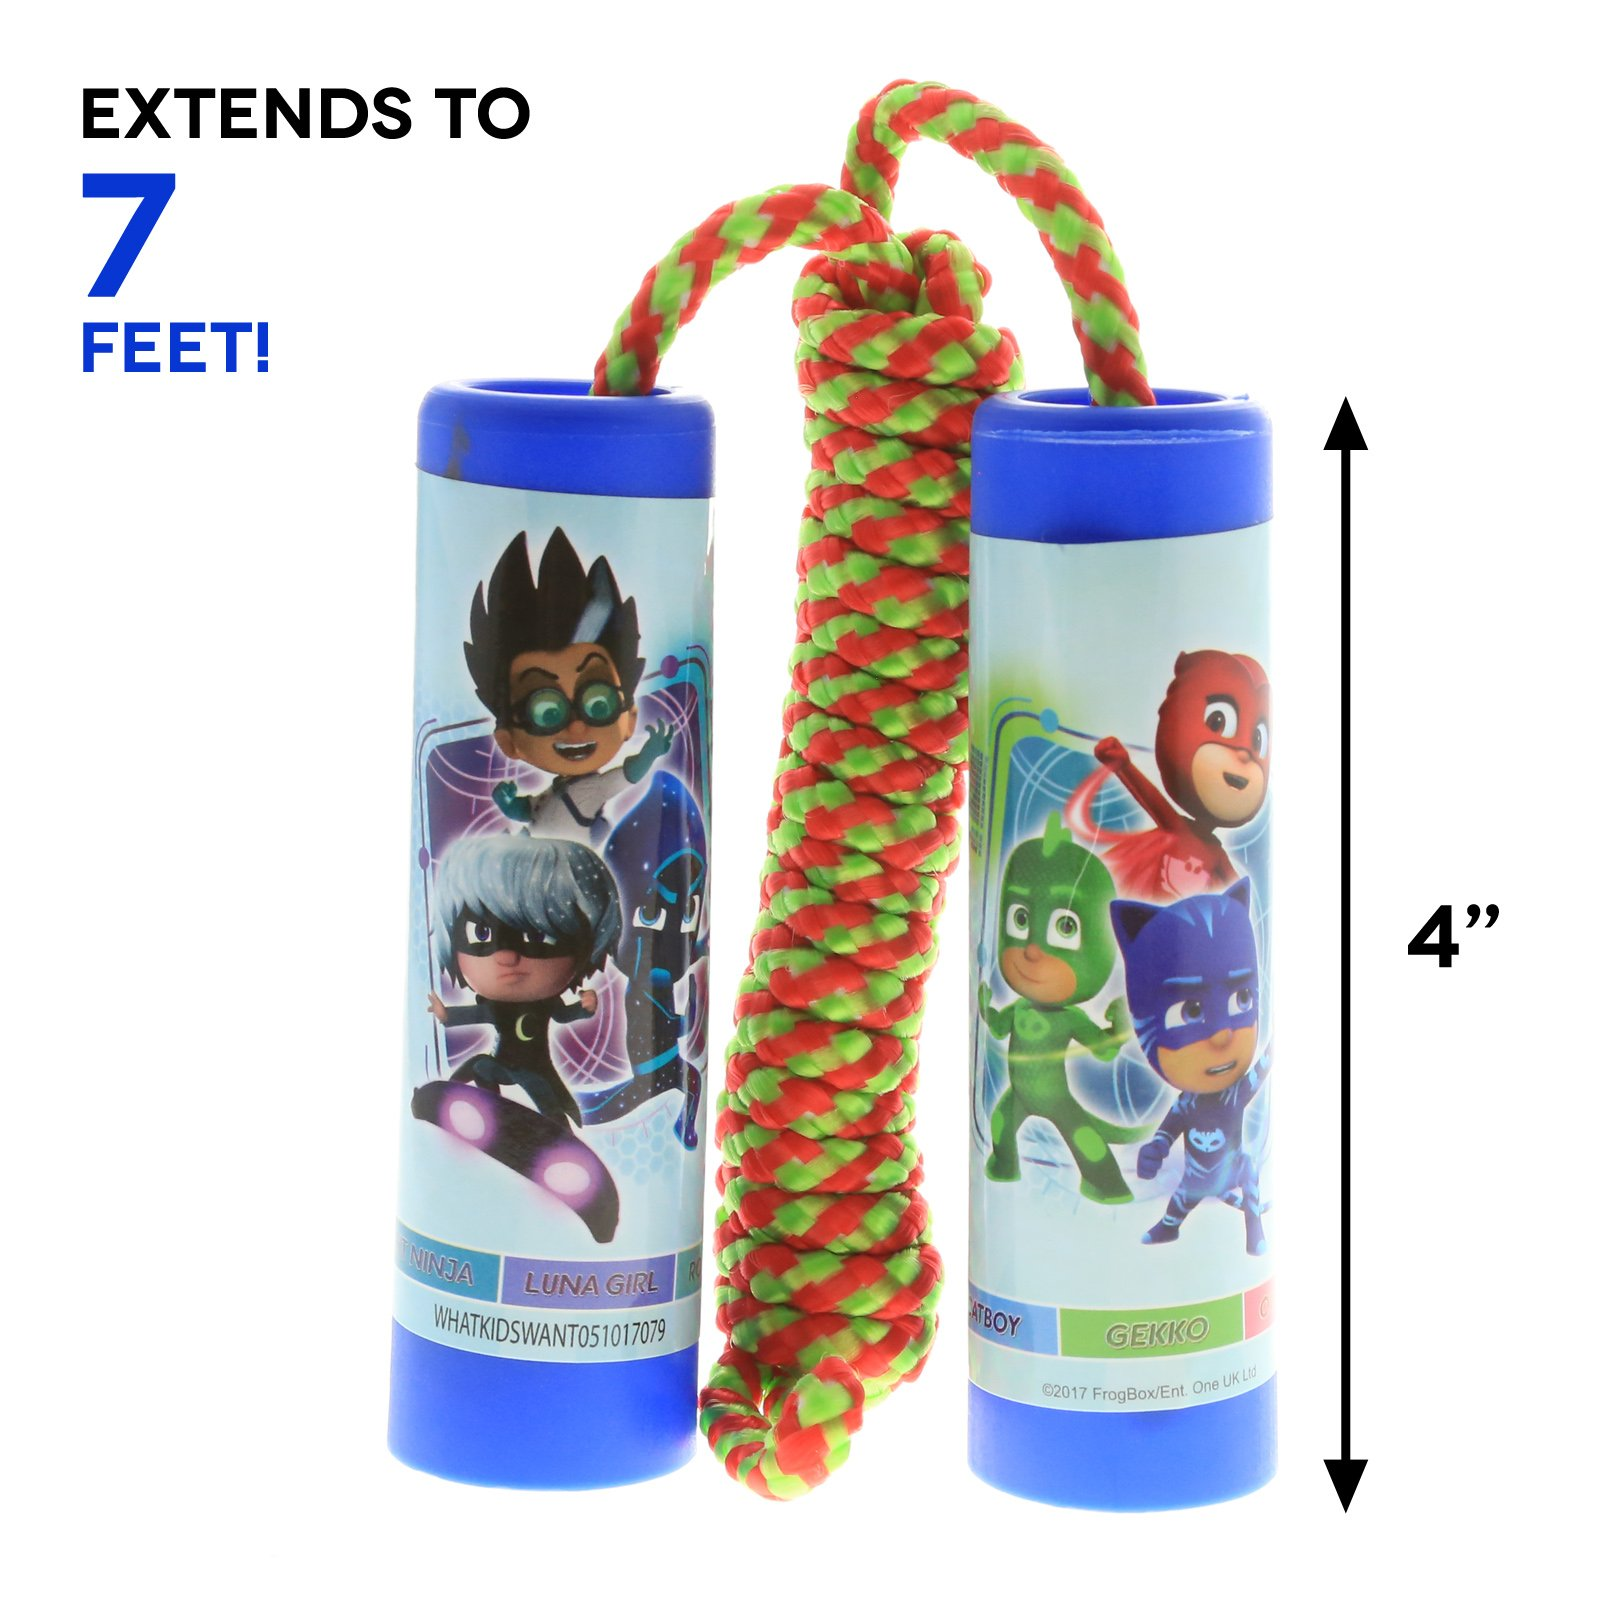 PJ Masks 7 Feet Long Jump Rope Exercise Toy - Blue